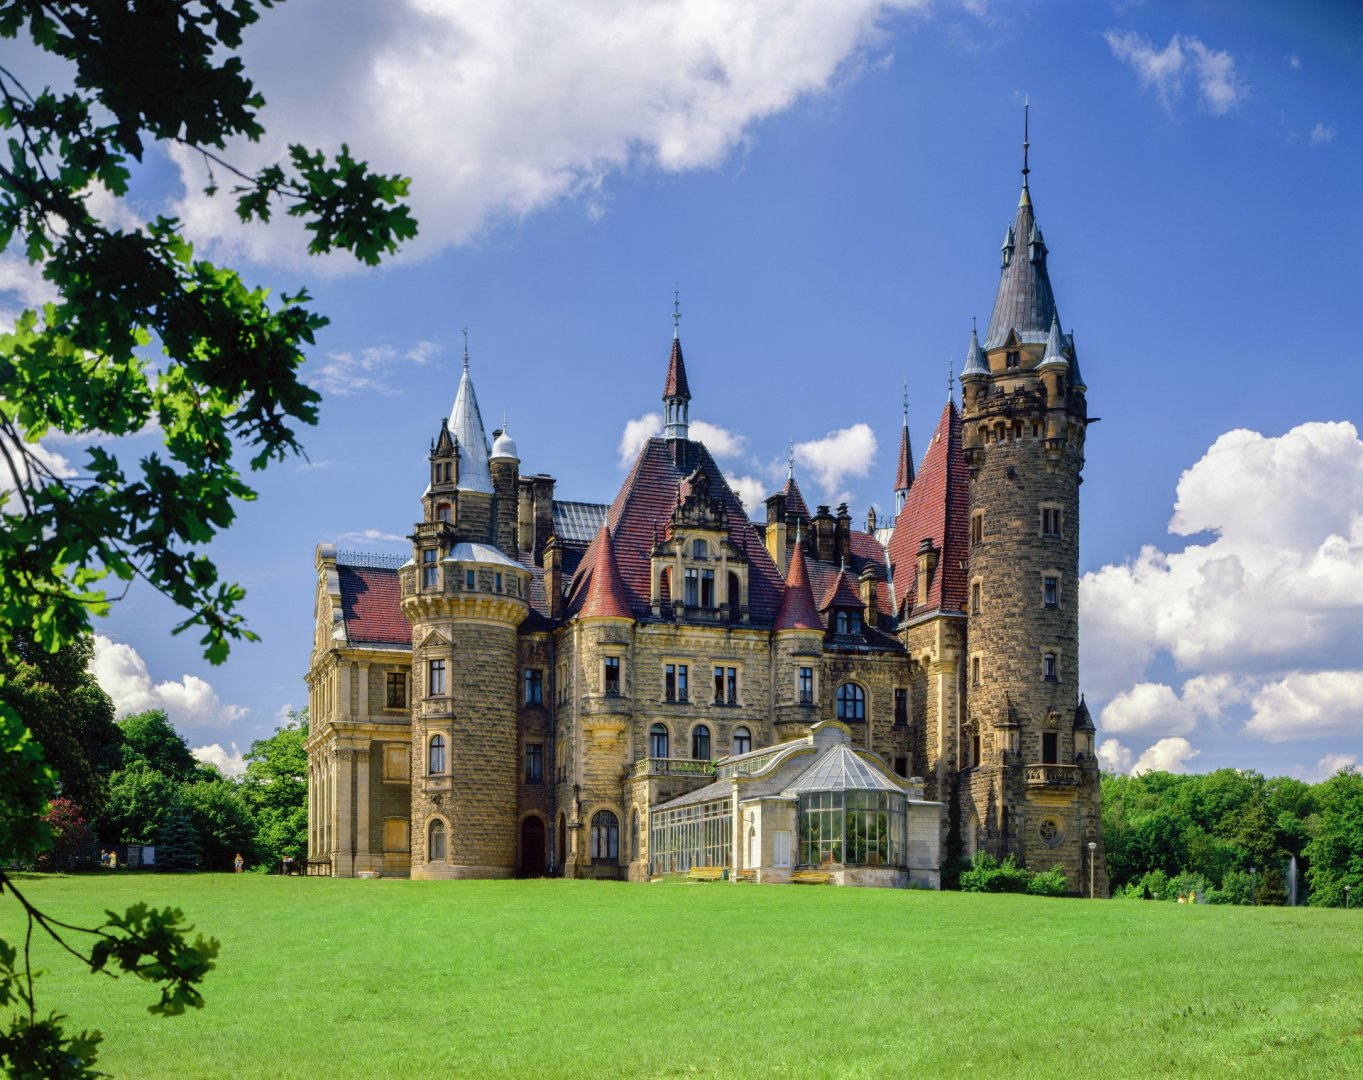 10 top castles and palaces in Poland